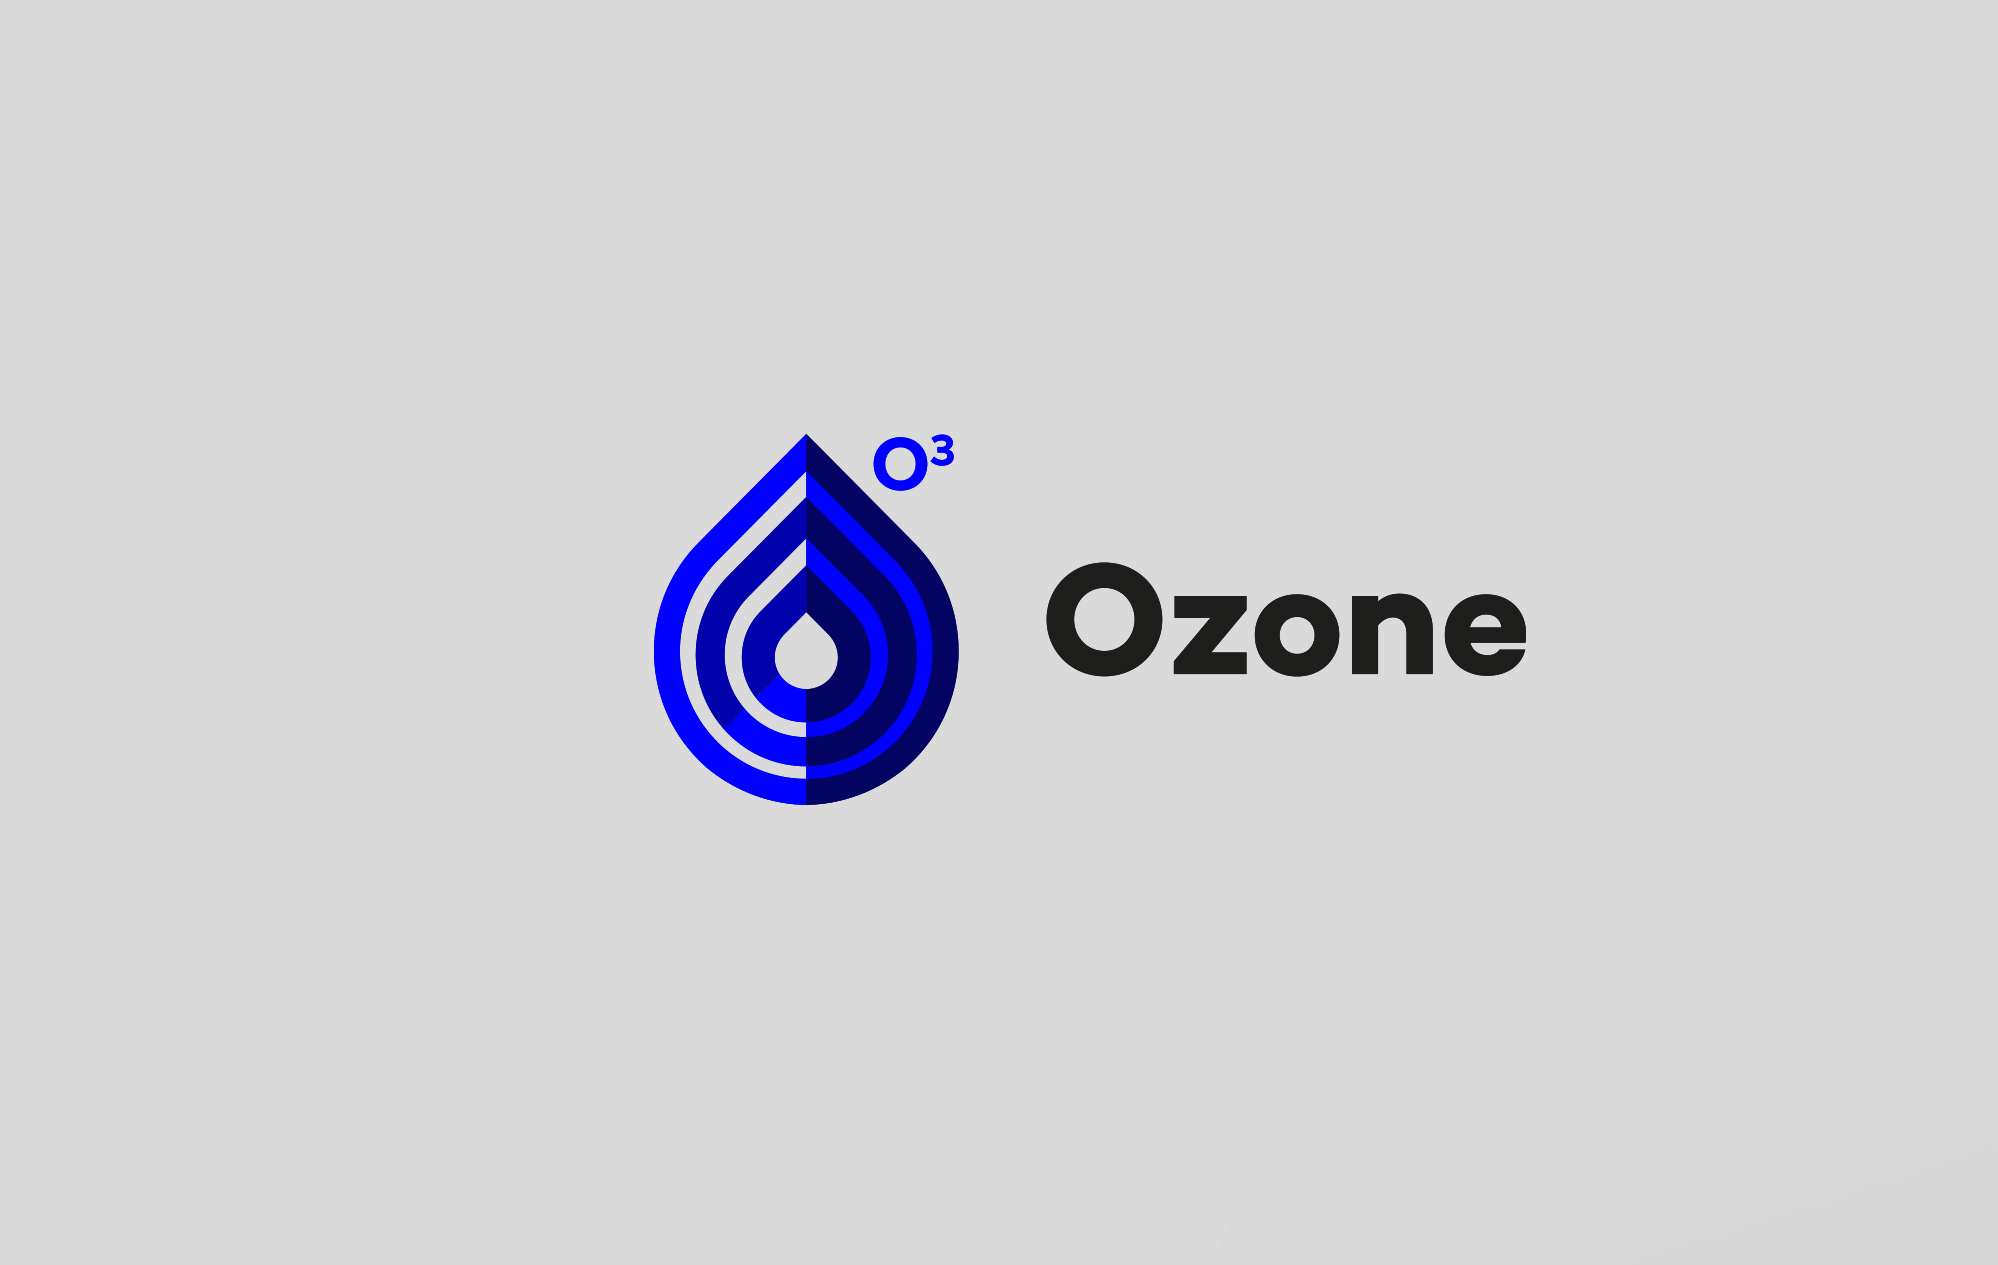 Ozone is a Brand that Produces Fresh and Healthy Systems